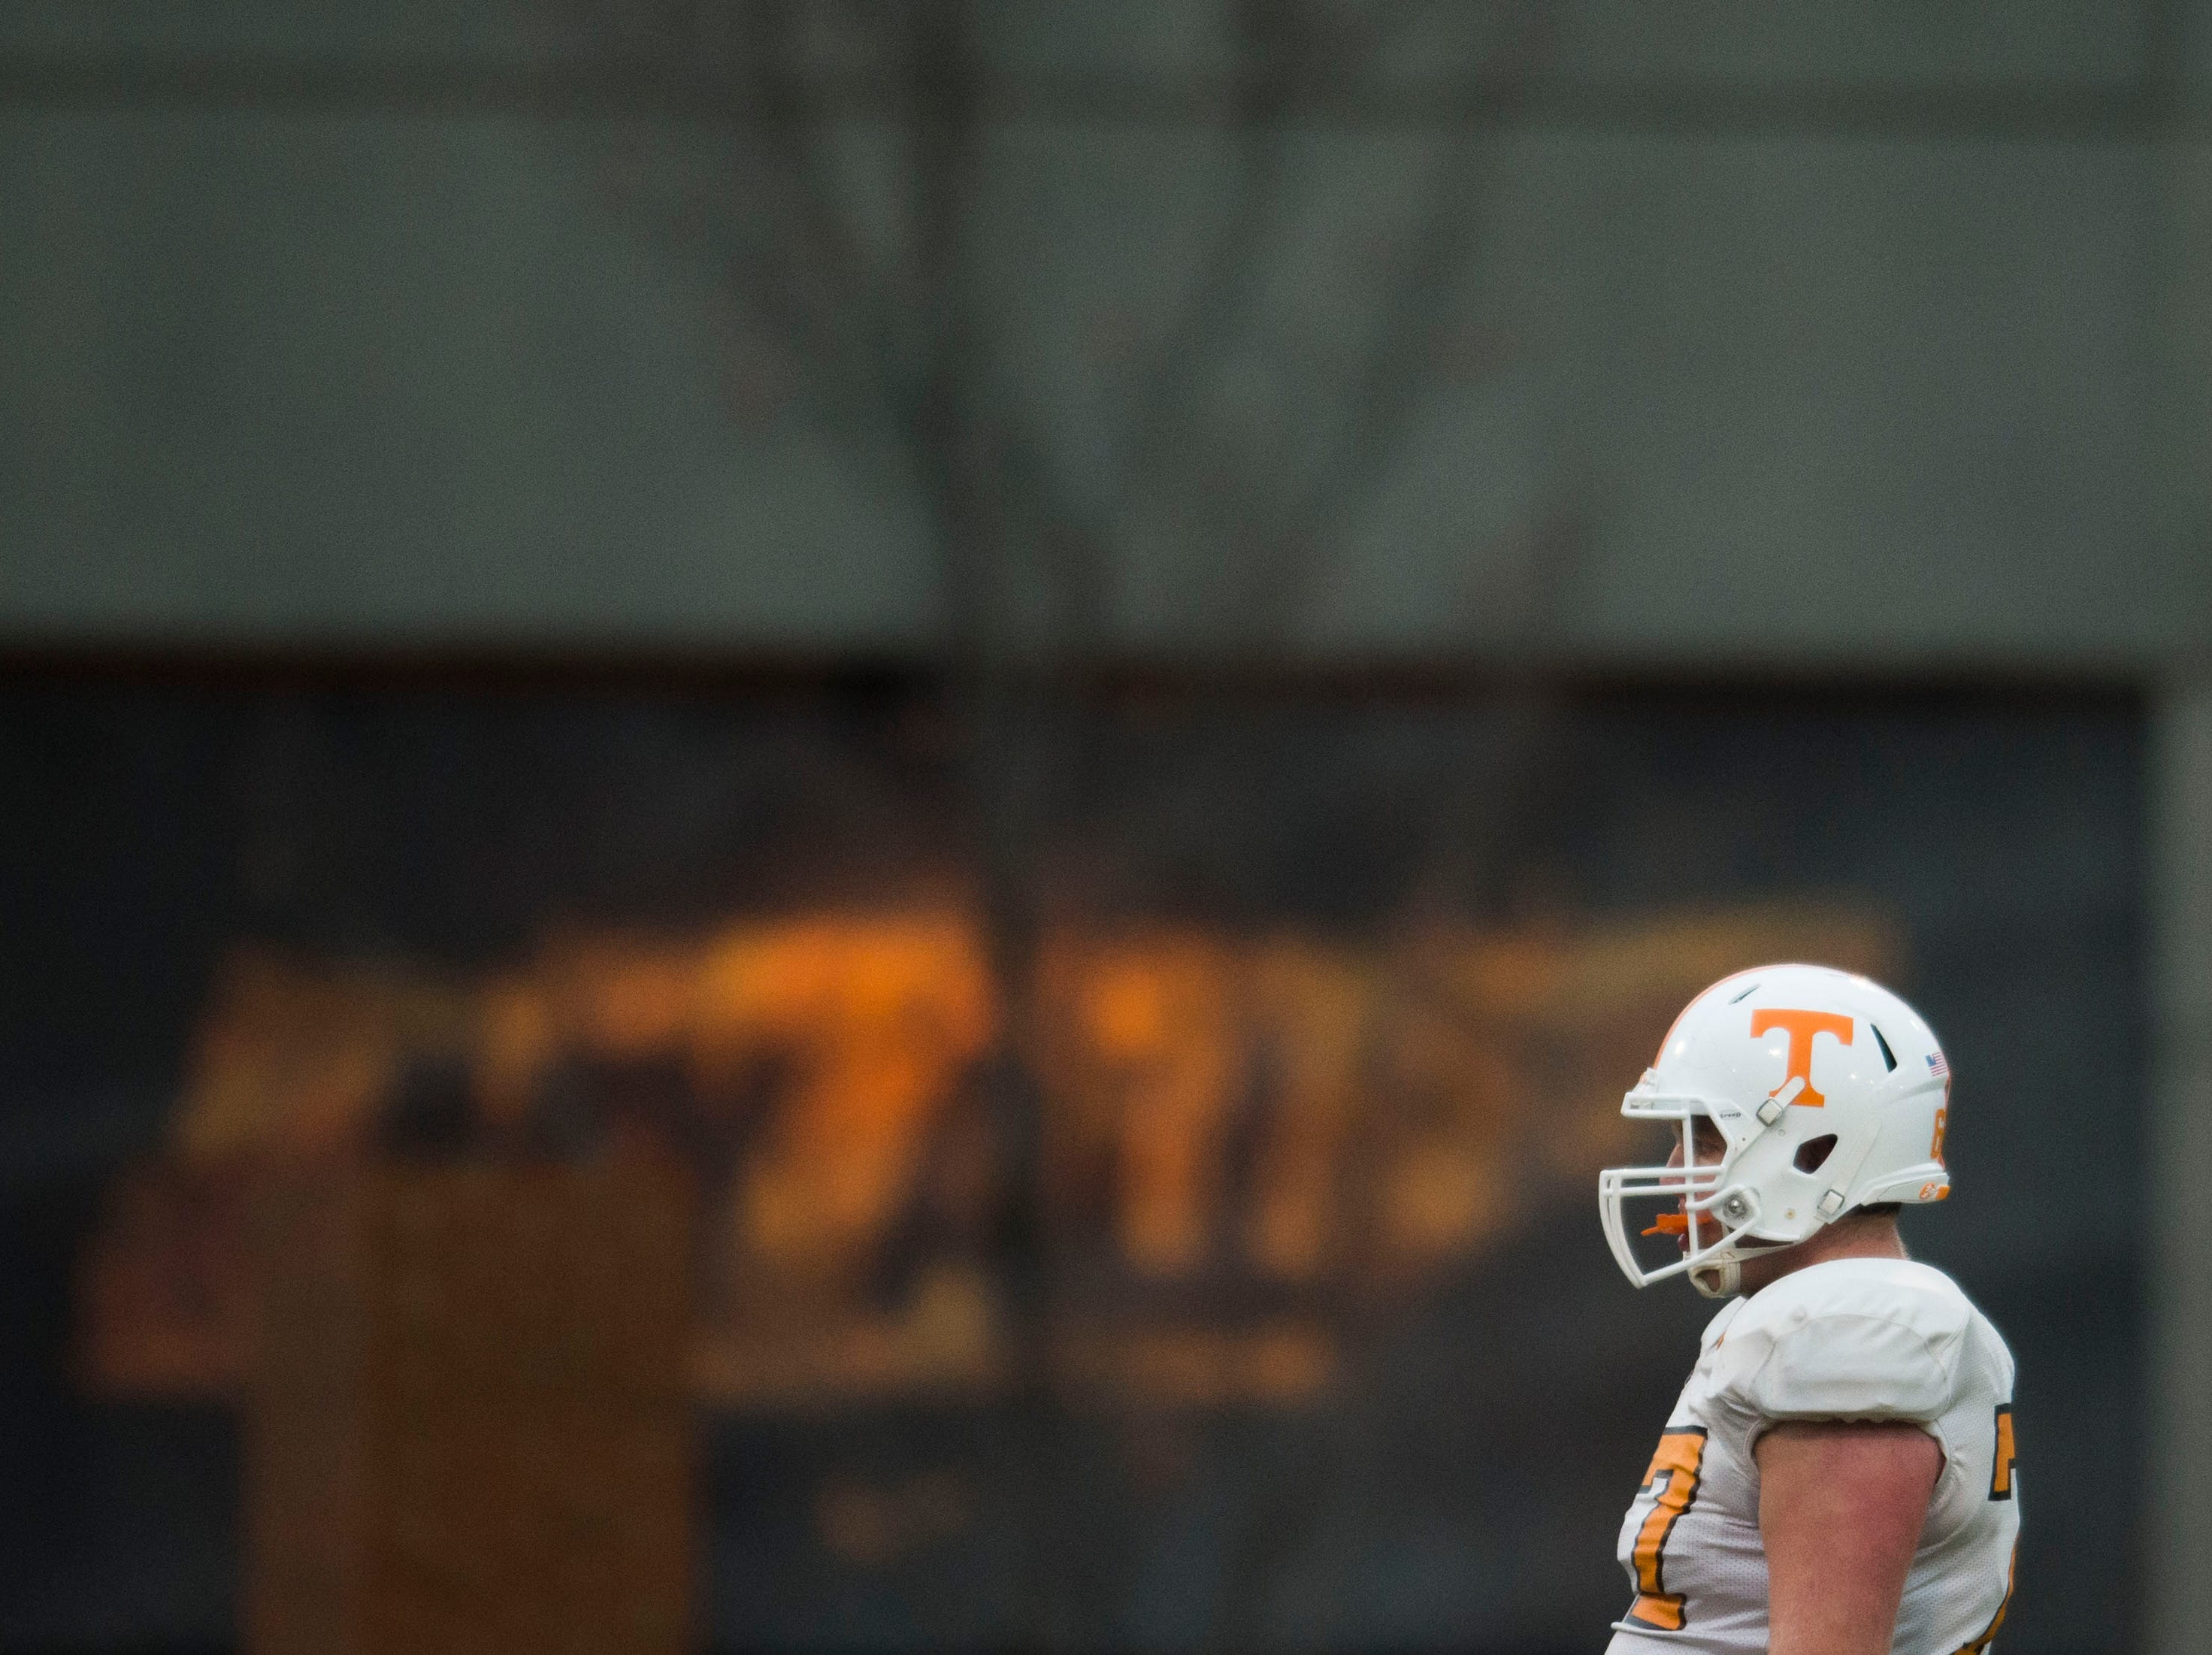 A player stands on the field during a University of Tennessee football practice, Tuesday, Nov. 13, 2018.